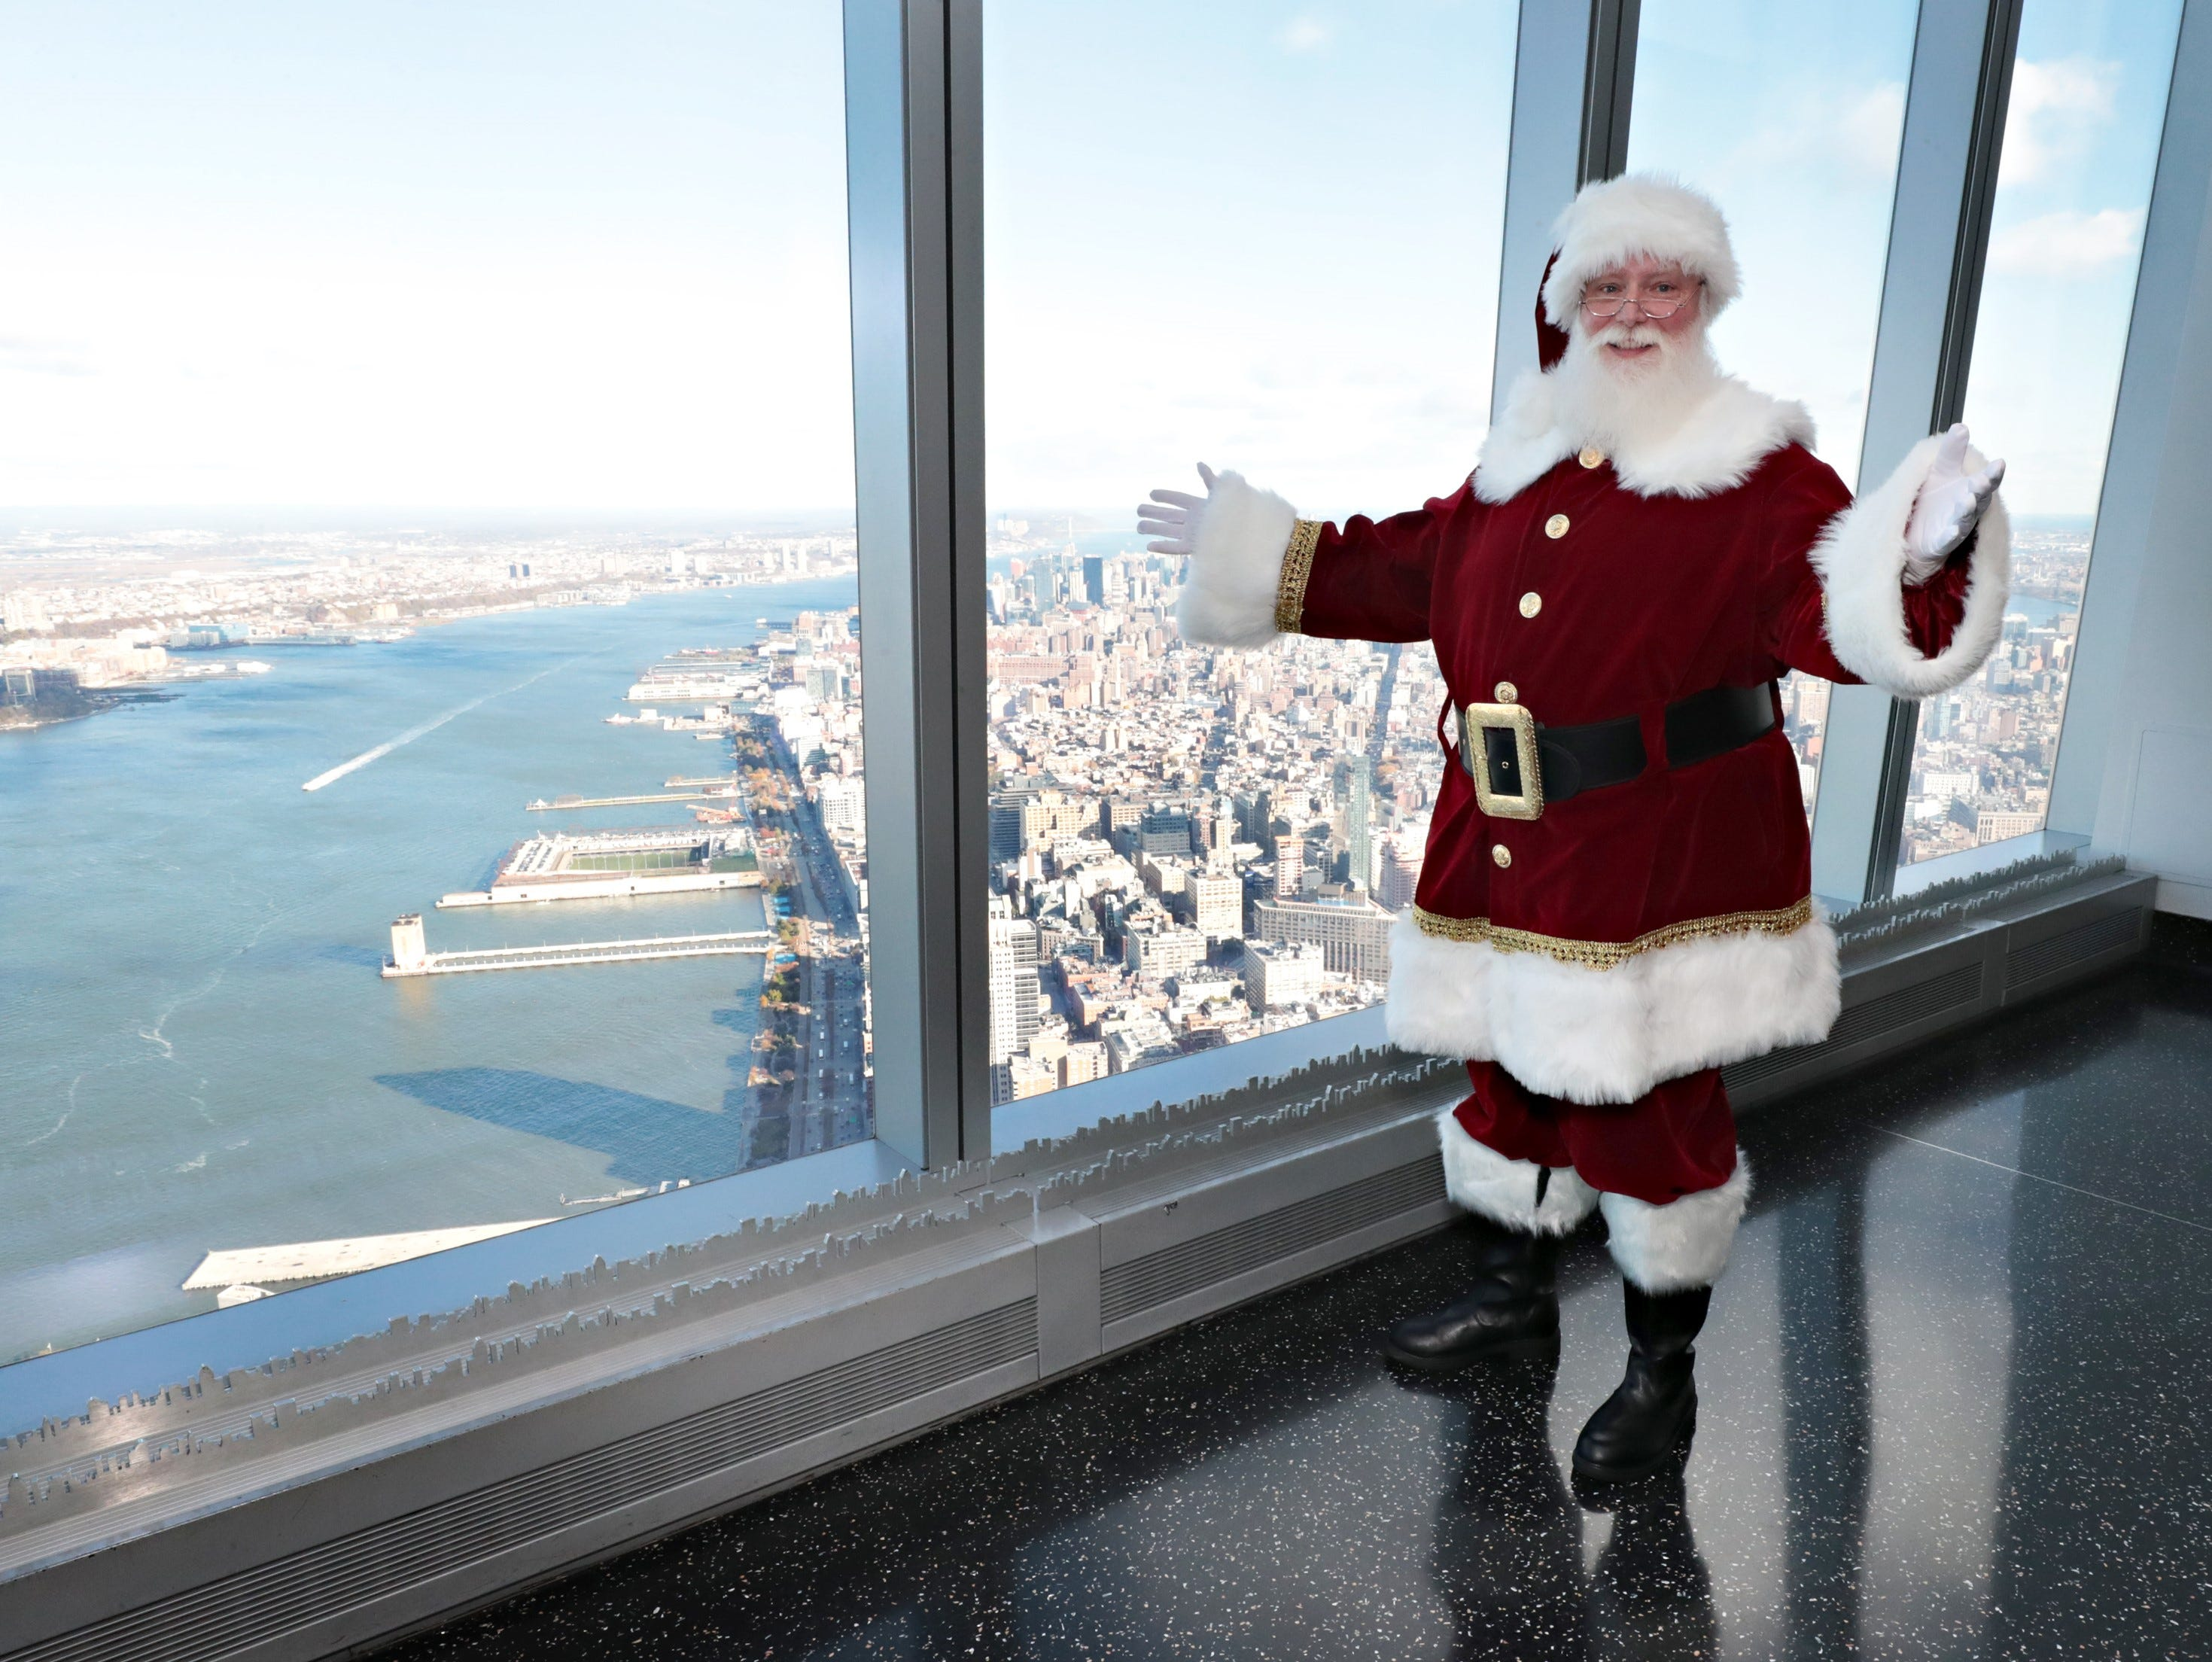 Ho, ho, ho! I can see the entire city from atop One World Trade Center!